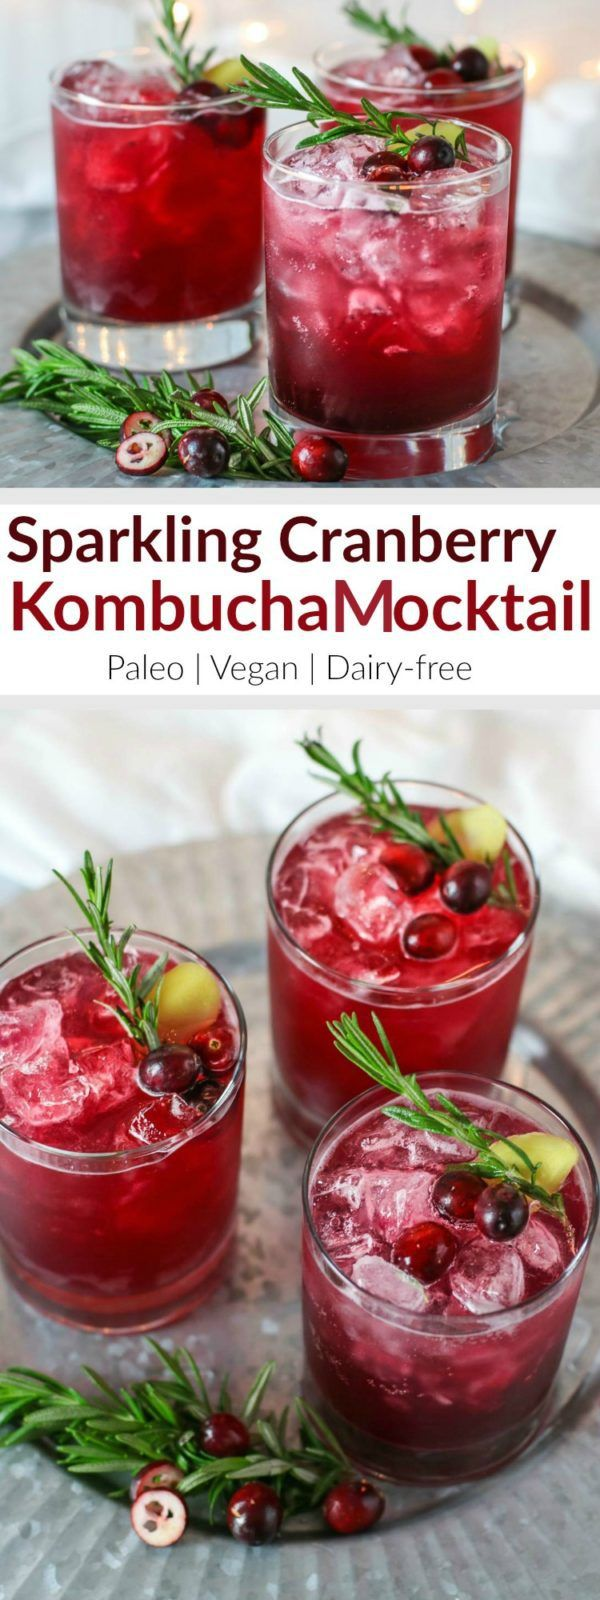 Sparkling Cranberry Kombucha Mocktail | This alcohol-free mocktail is a refreshing and stunning alternative to other holiday cocktails. The ginger and rosemary lend a festive touch and pair nicely with the tart cranberry juice. So now you can celebrate th